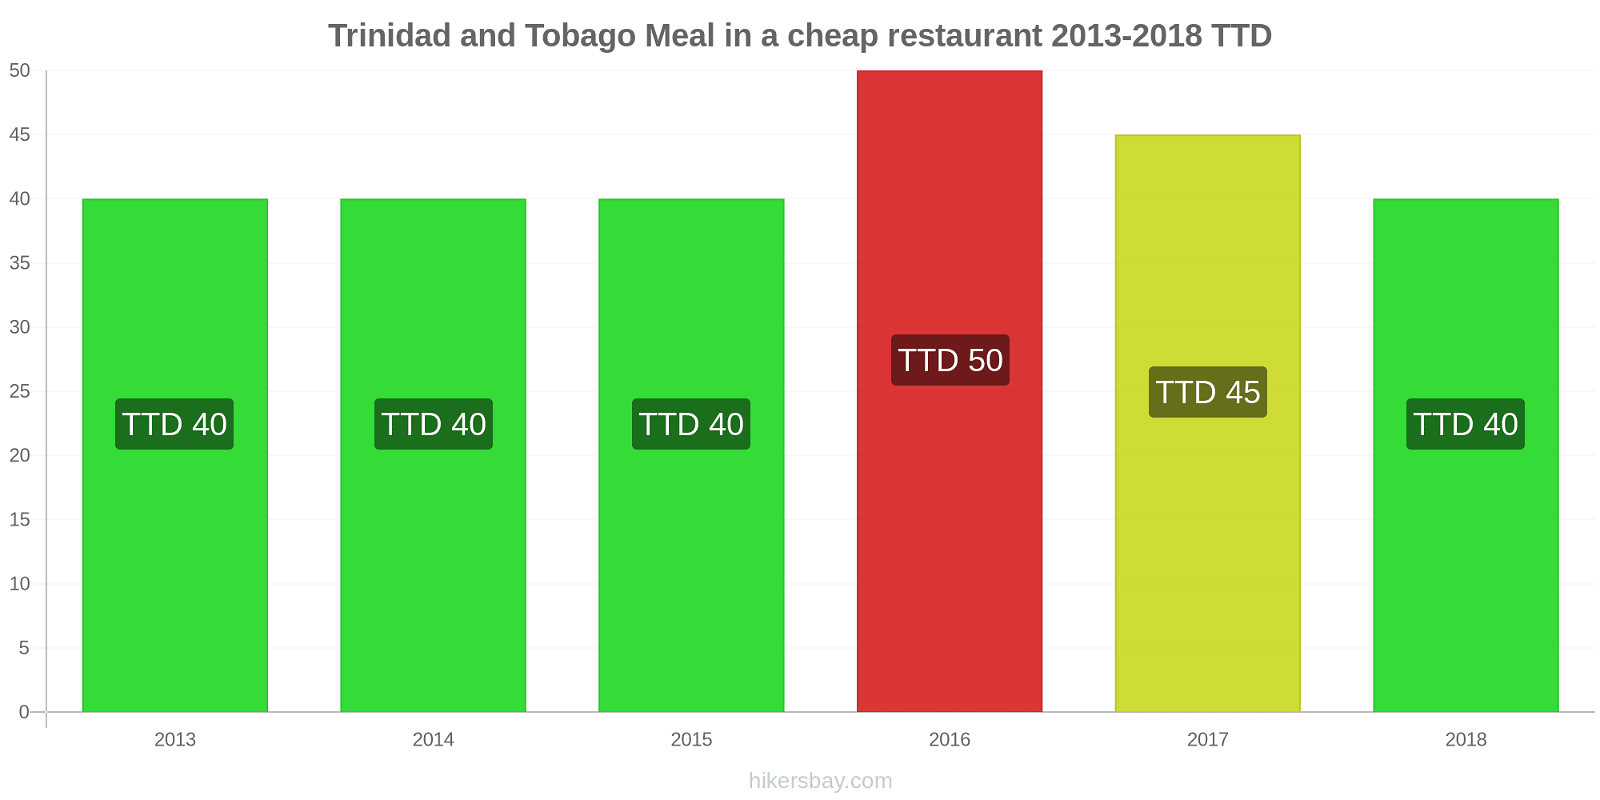 Trinidad and Tobago price changes Meal in a cheap restaurant hikersbay.com